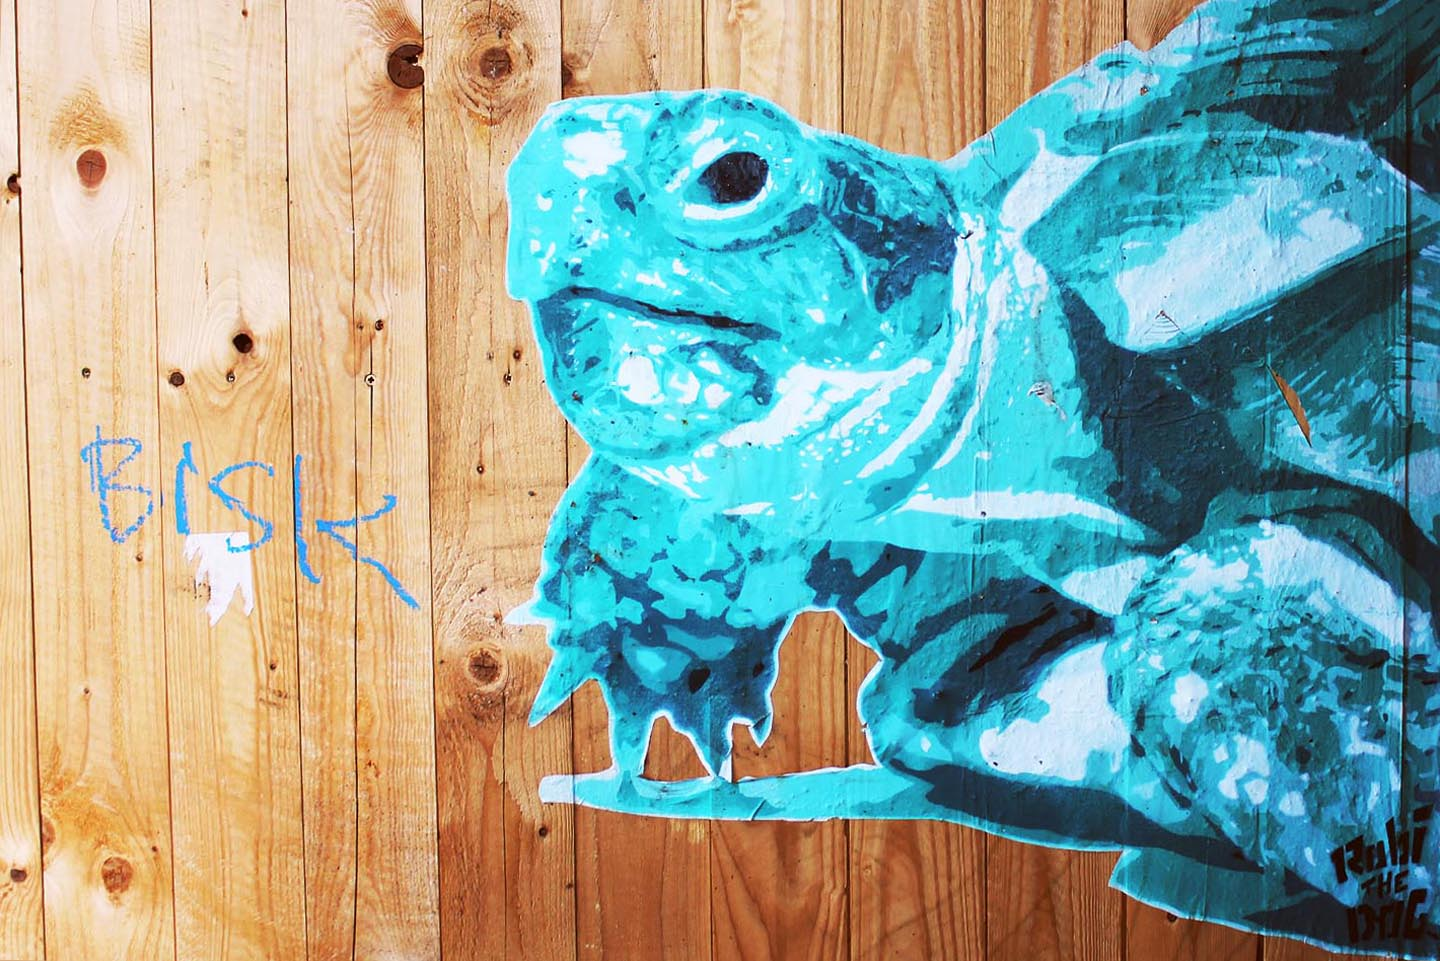 Turtle from Street Artist Robi the Dog in Berlin